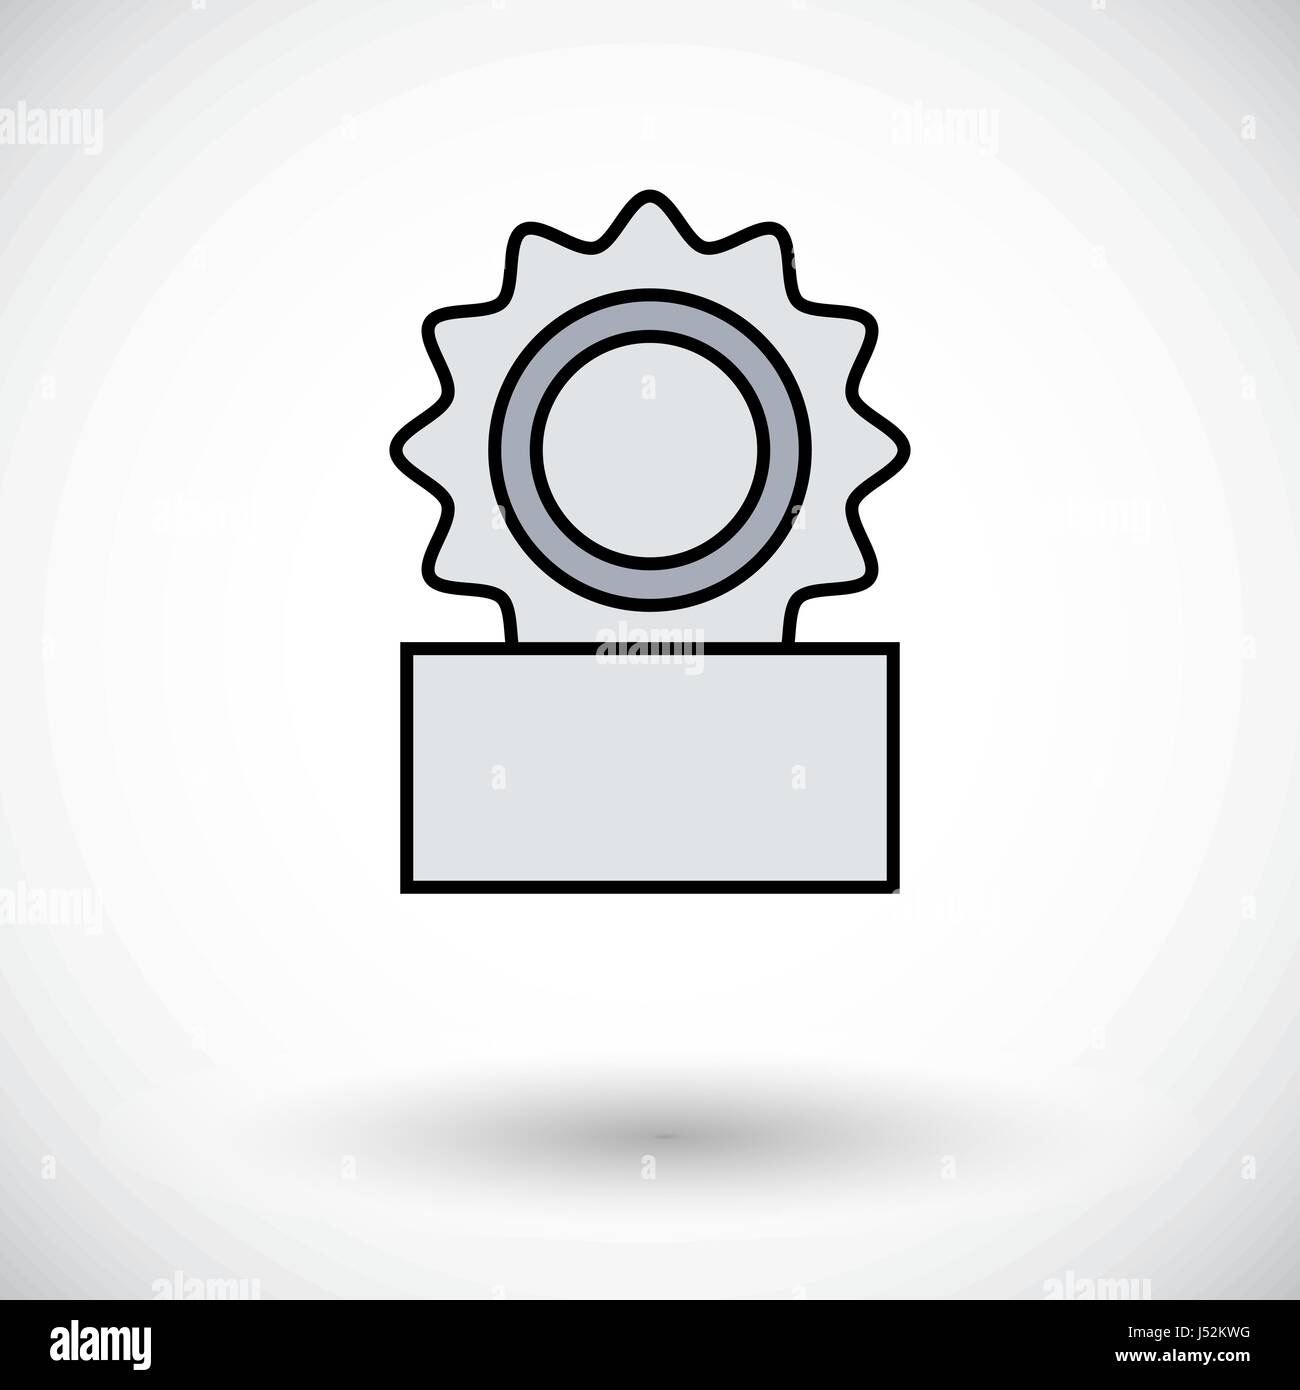 Canned. Flat icon on the white background for web and mobile applications. Vector illustration. - Stock Vector